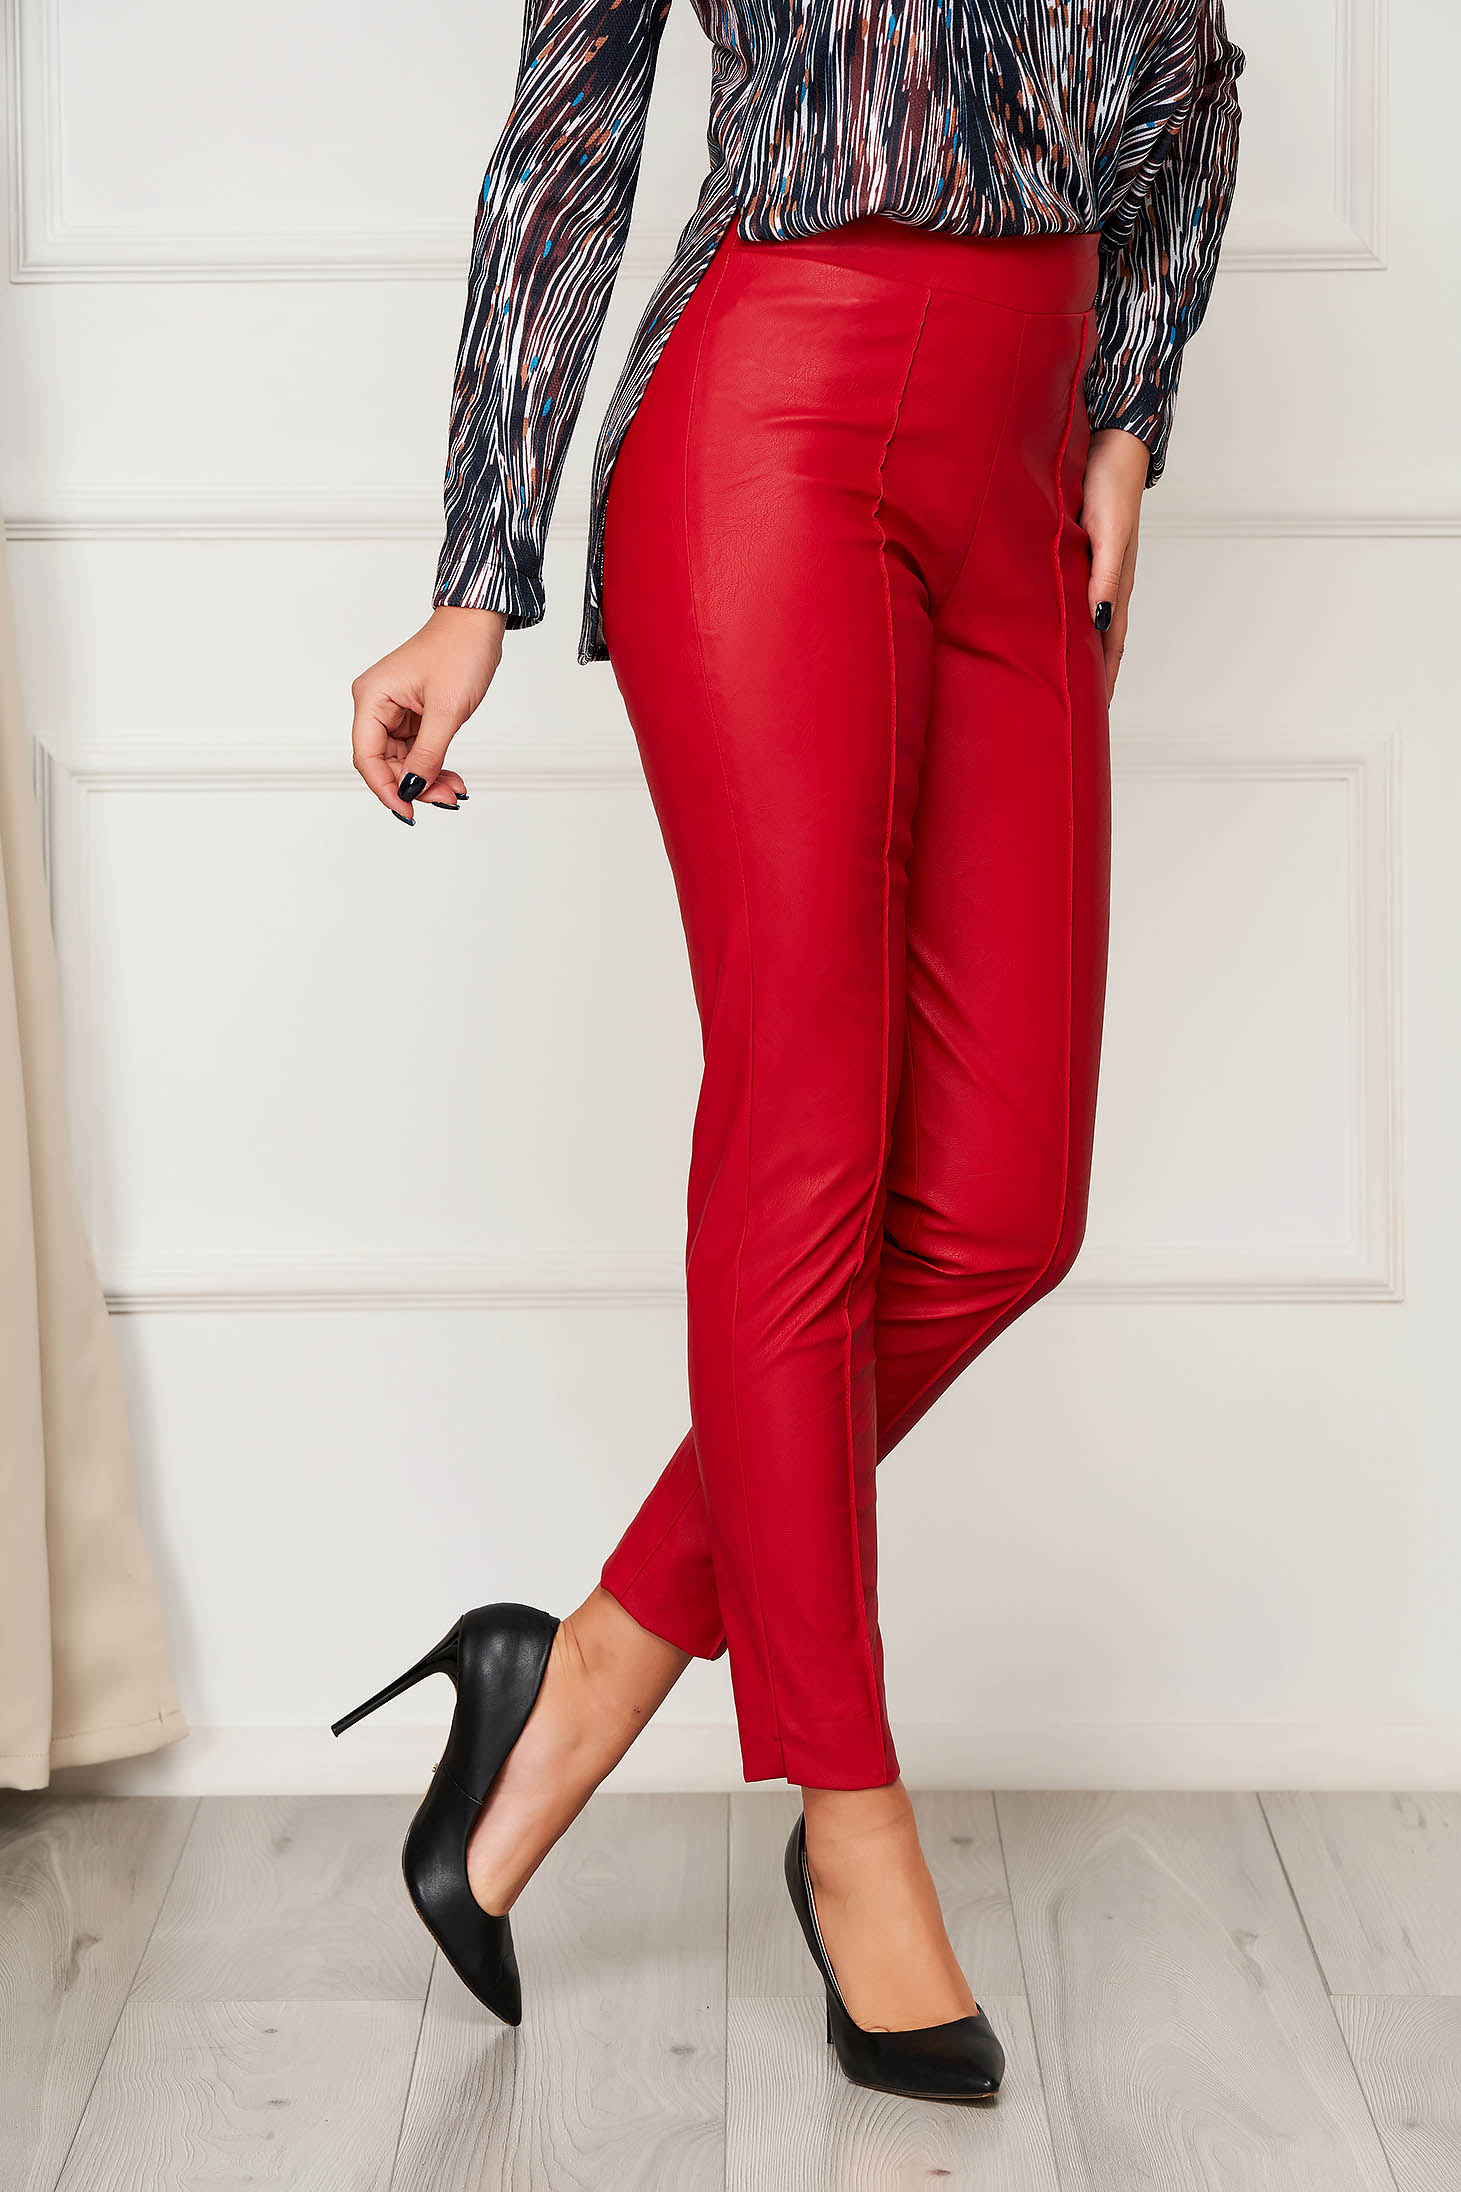 Casual red StarShinerS trousers from ecological leather with tented cut high waisted